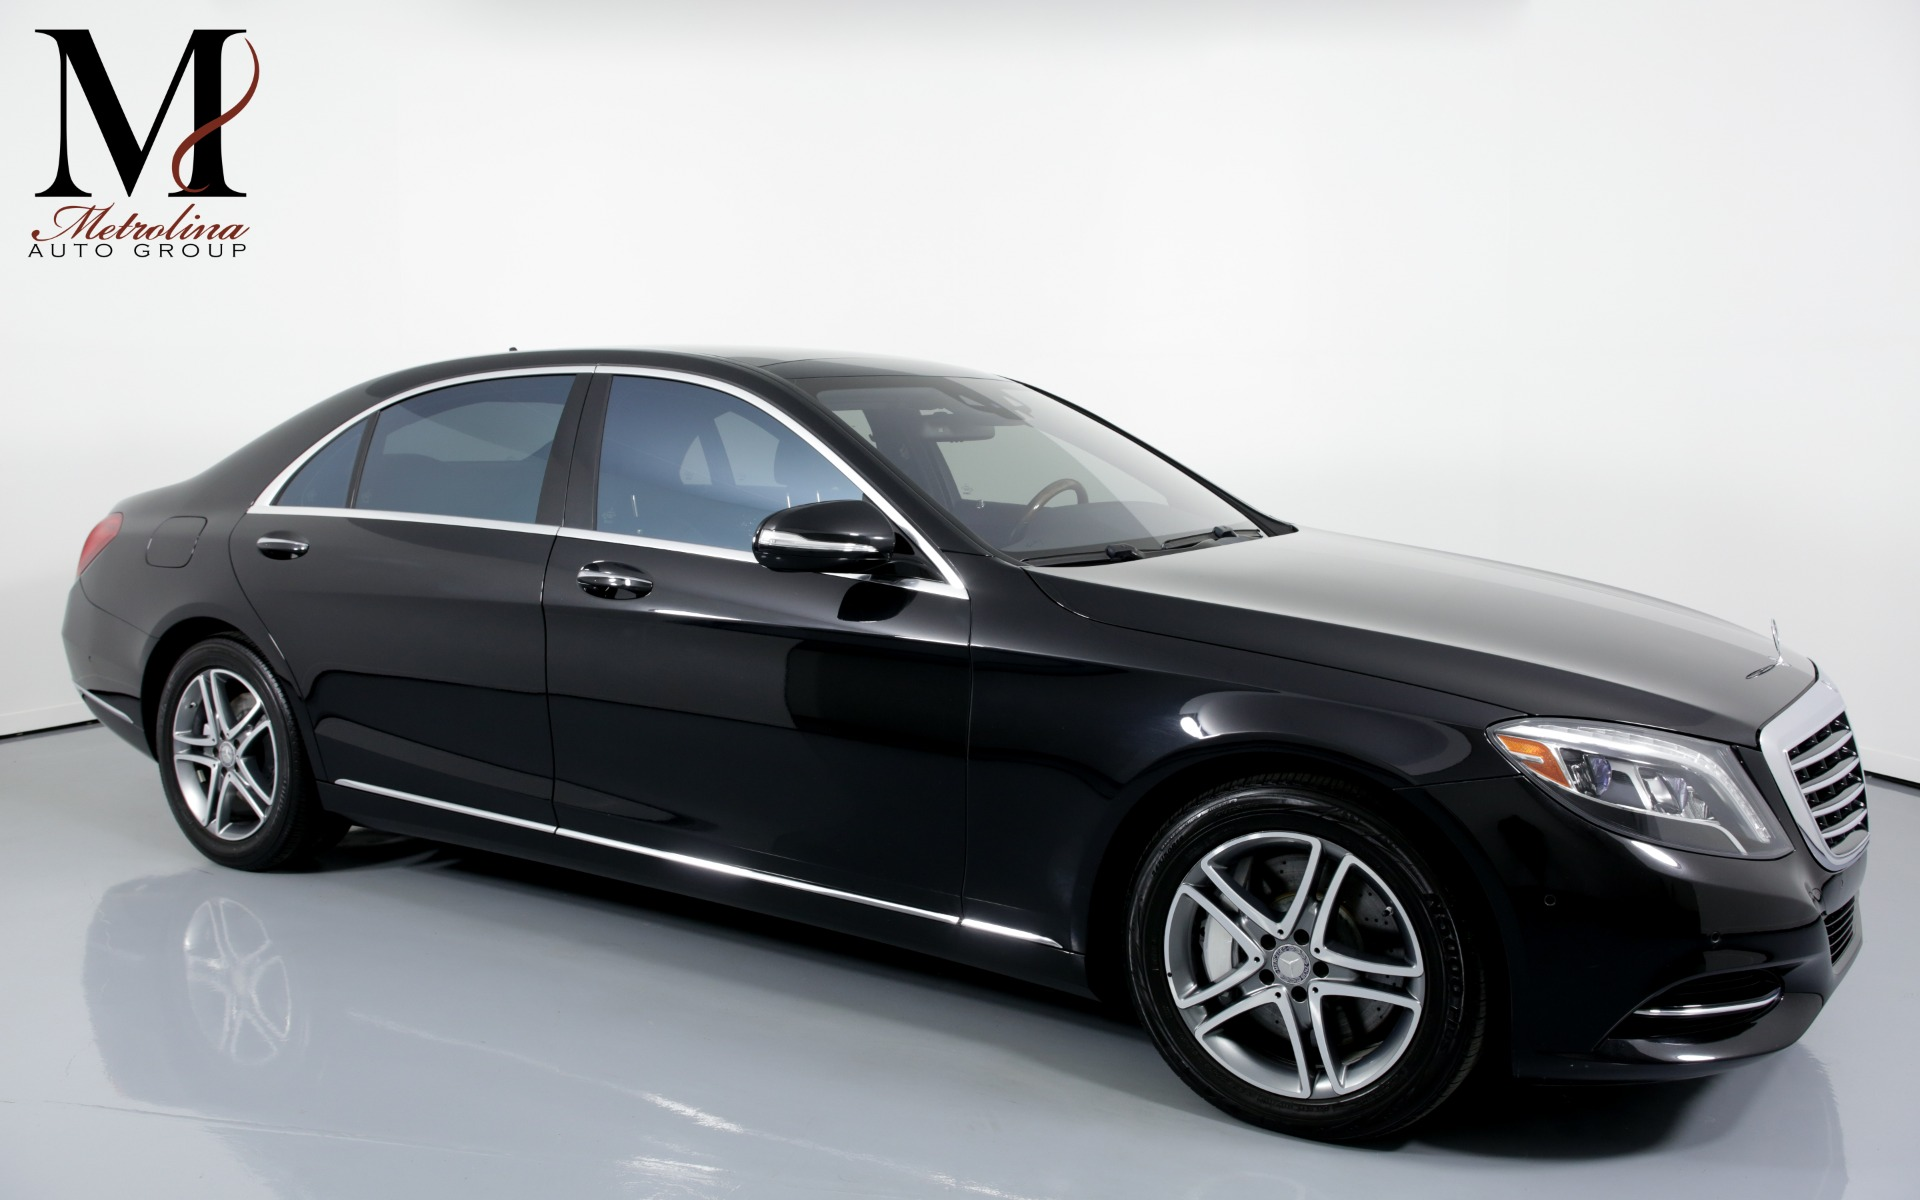 Used 2016 Mercedes-Benz S-Class S 550 4dr Sedan for sale $51,456 at Metrolina Auto Group in Charlotte NC 28217 - 1